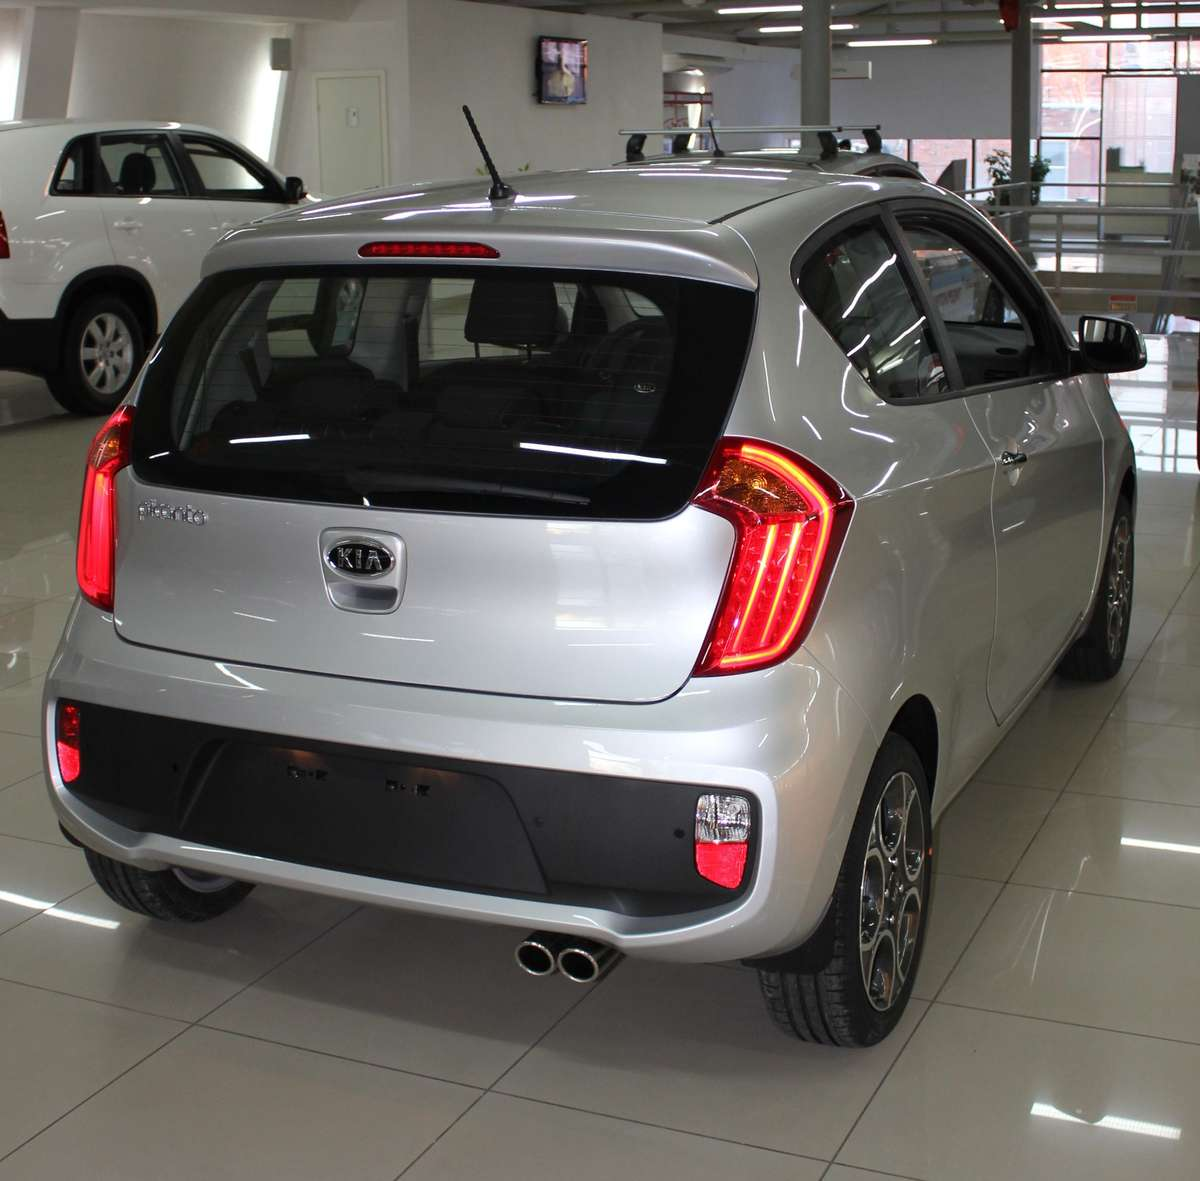 used 2011 kia picanto photos 1200cc gasoline ff automatic for sale. Black Bedroom Furniture Sets. Home Design Ideas